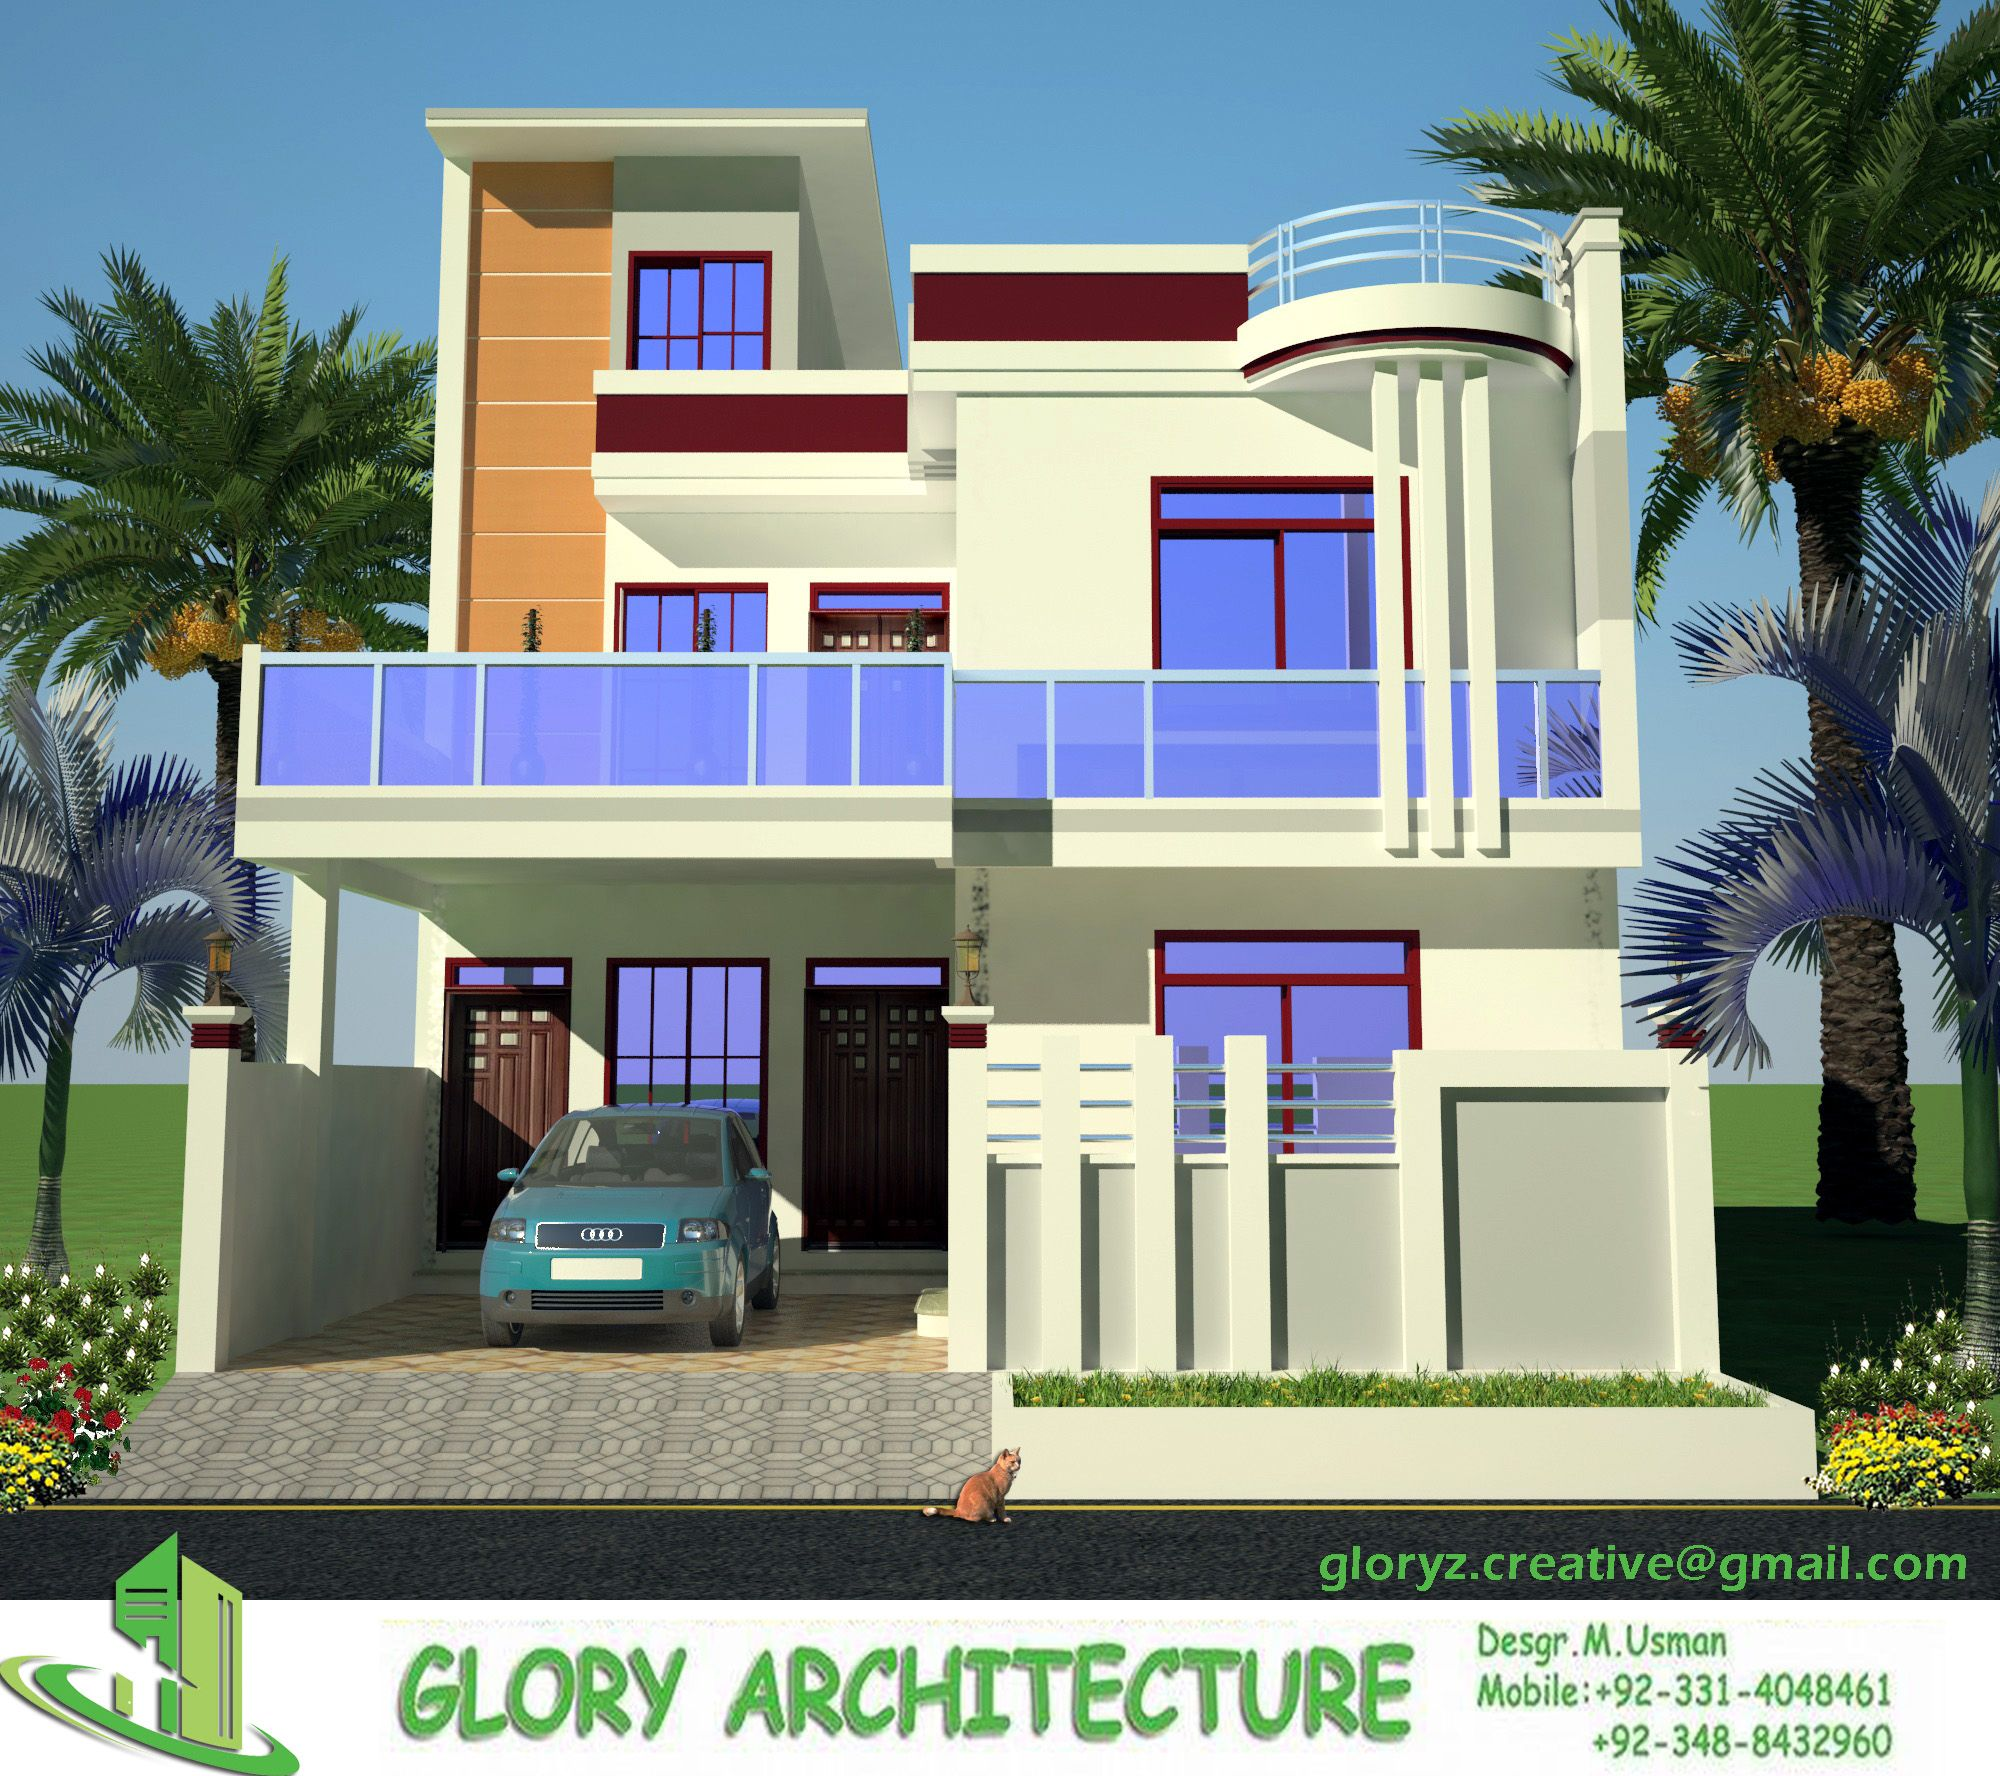 Home 3d Design Online Minimalist: Jinnah Garden House Elevation